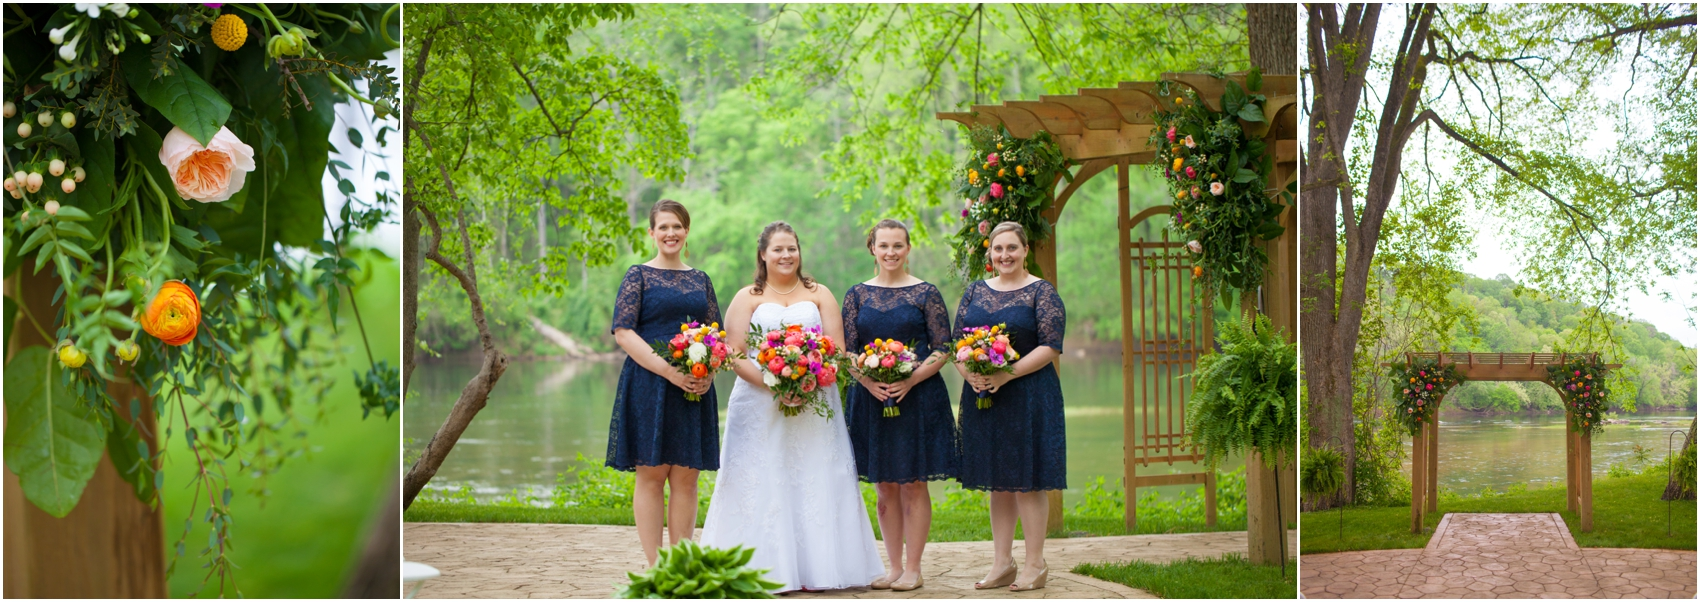 Outdoor_Central_Virginia_Clores_Bros_Summer_Wedding_Fredericksburg_VA_0041.jpg